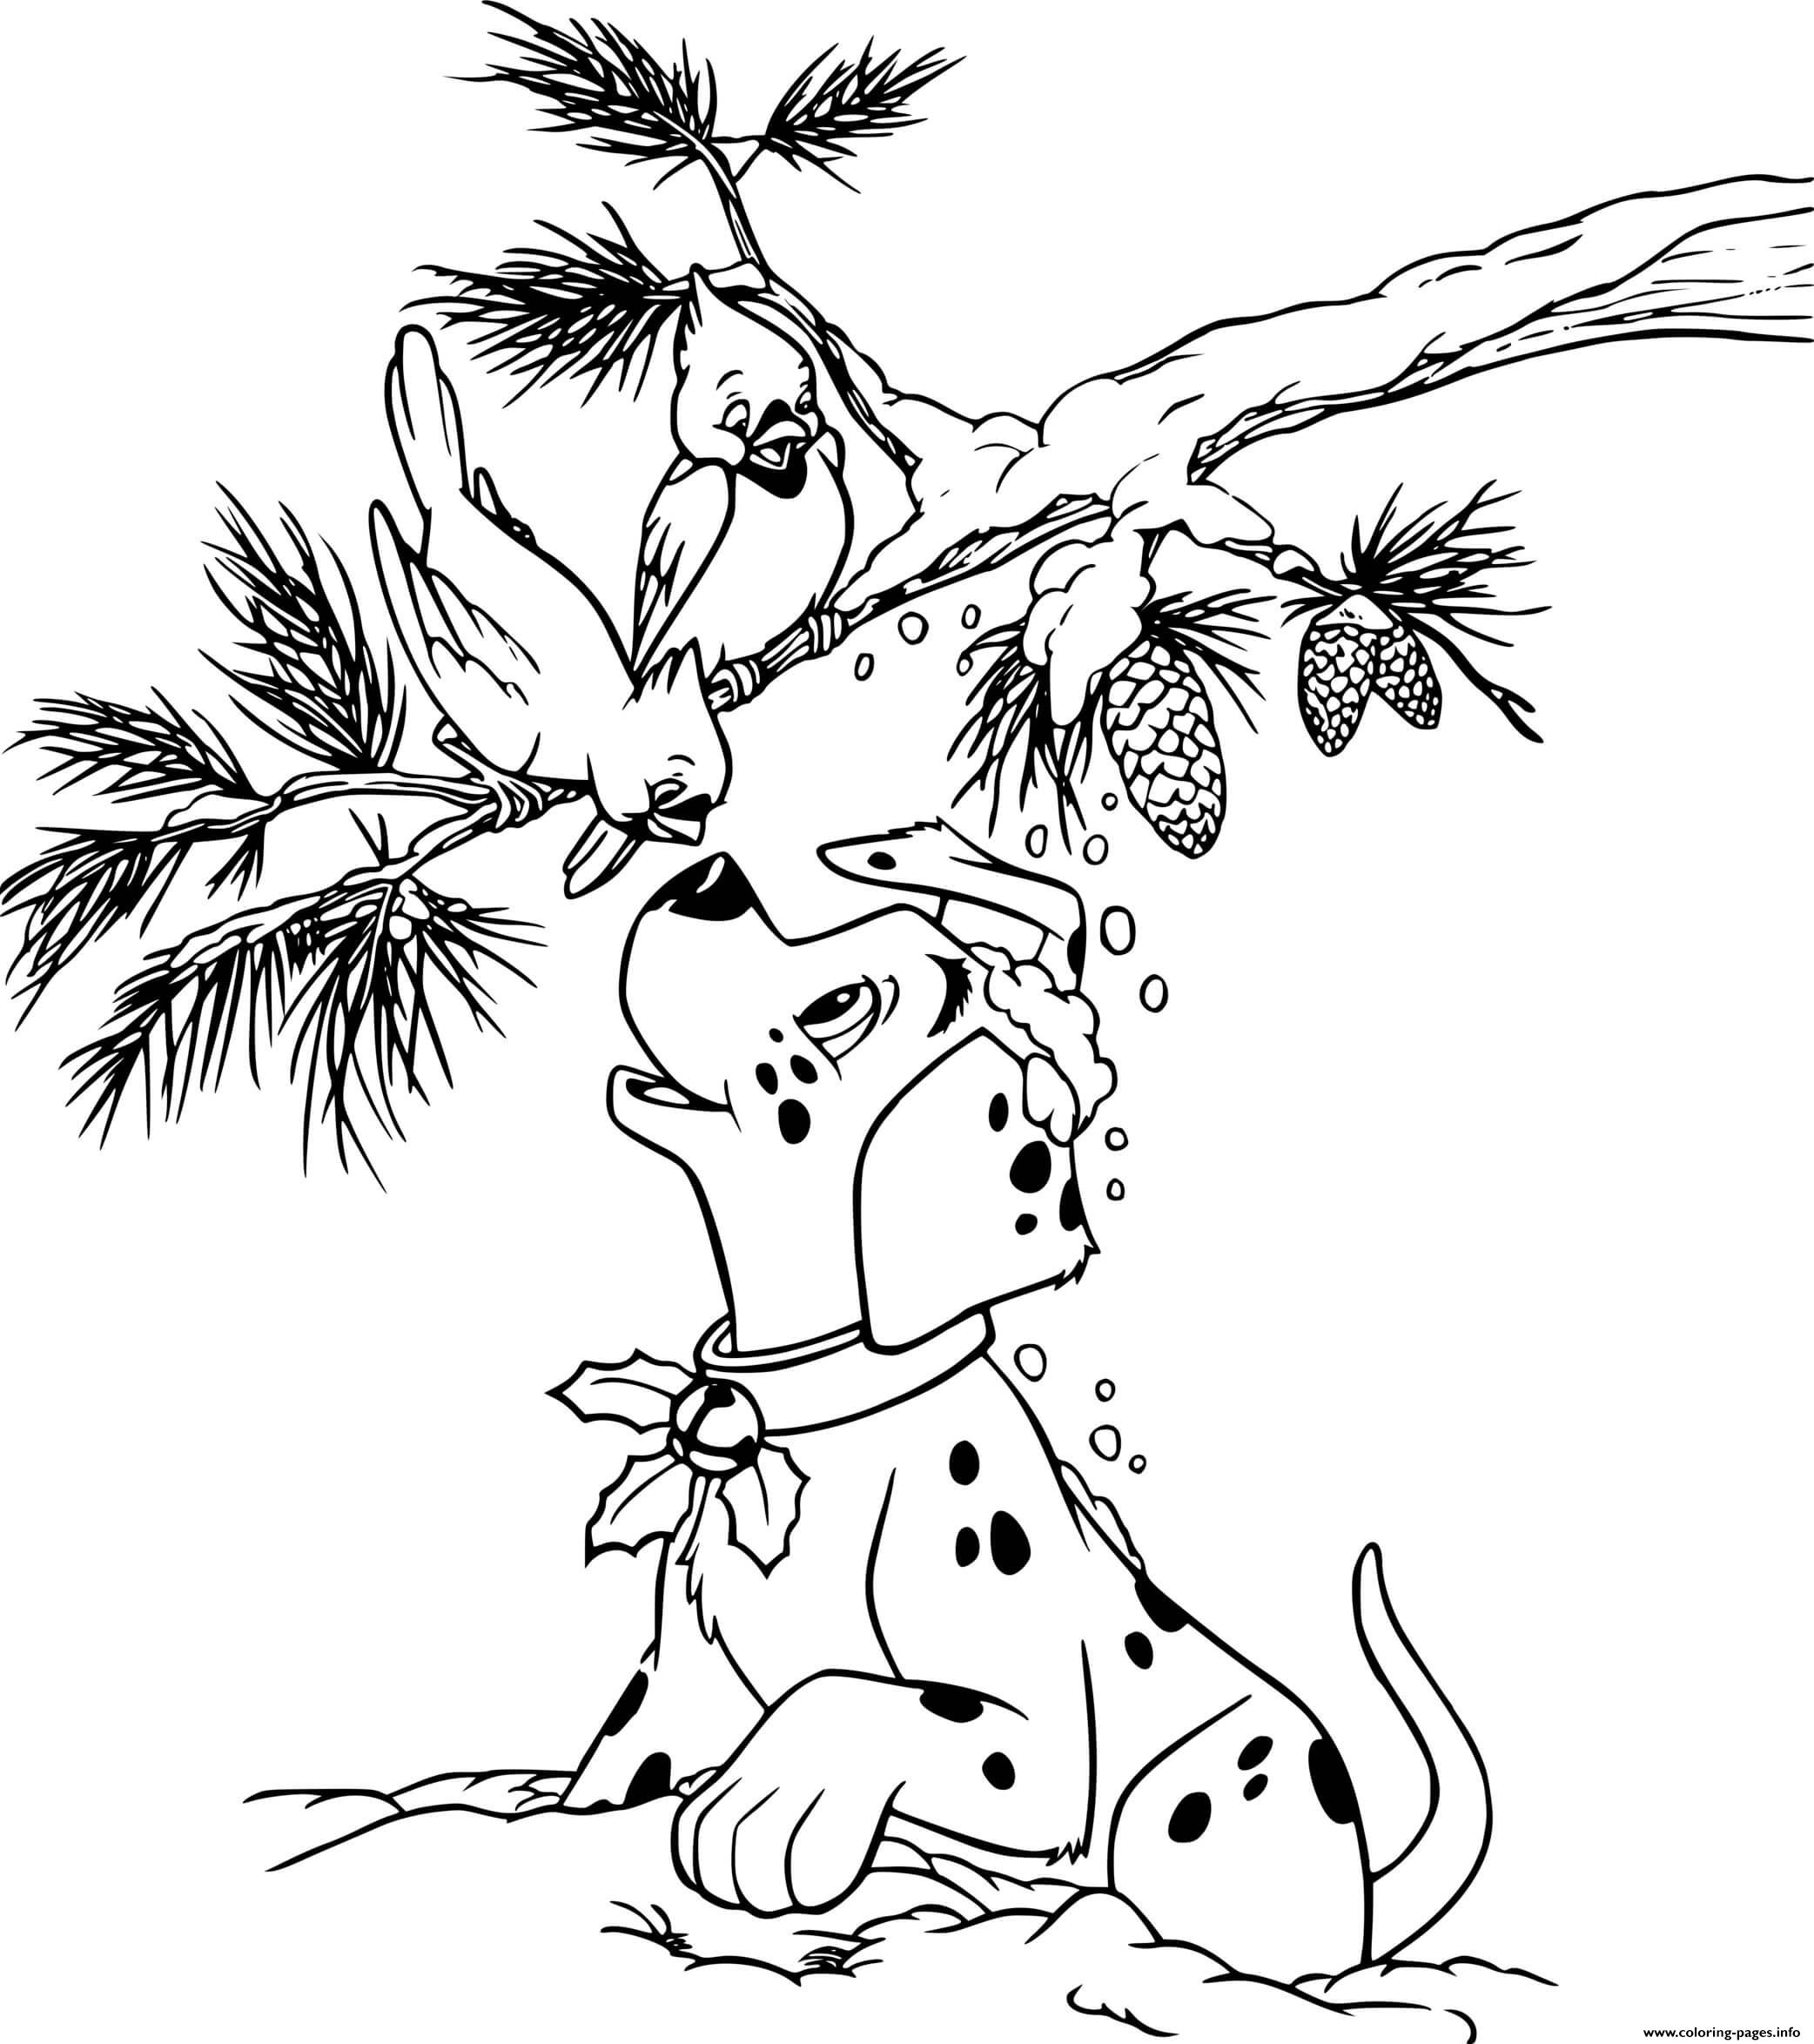 Dalmatian Puppy Greeting Birds Coloring Pages Printable